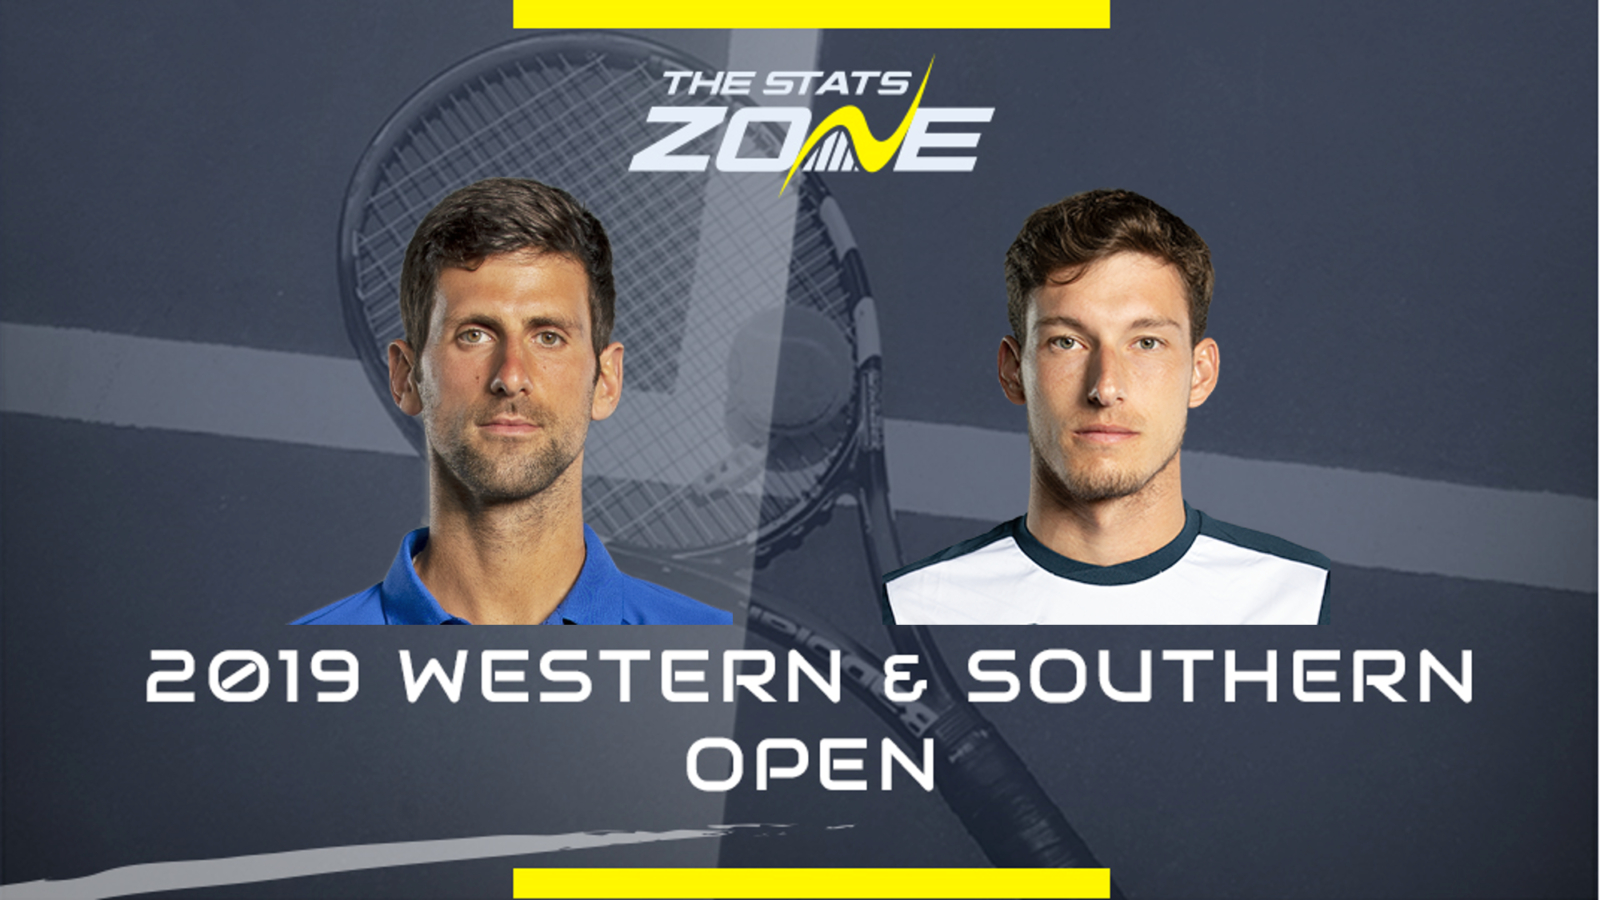 2019 Cincinnati Masters Novak Djokovic Vs Pablo Carreno Busta Preview Prediction The Stats Zone